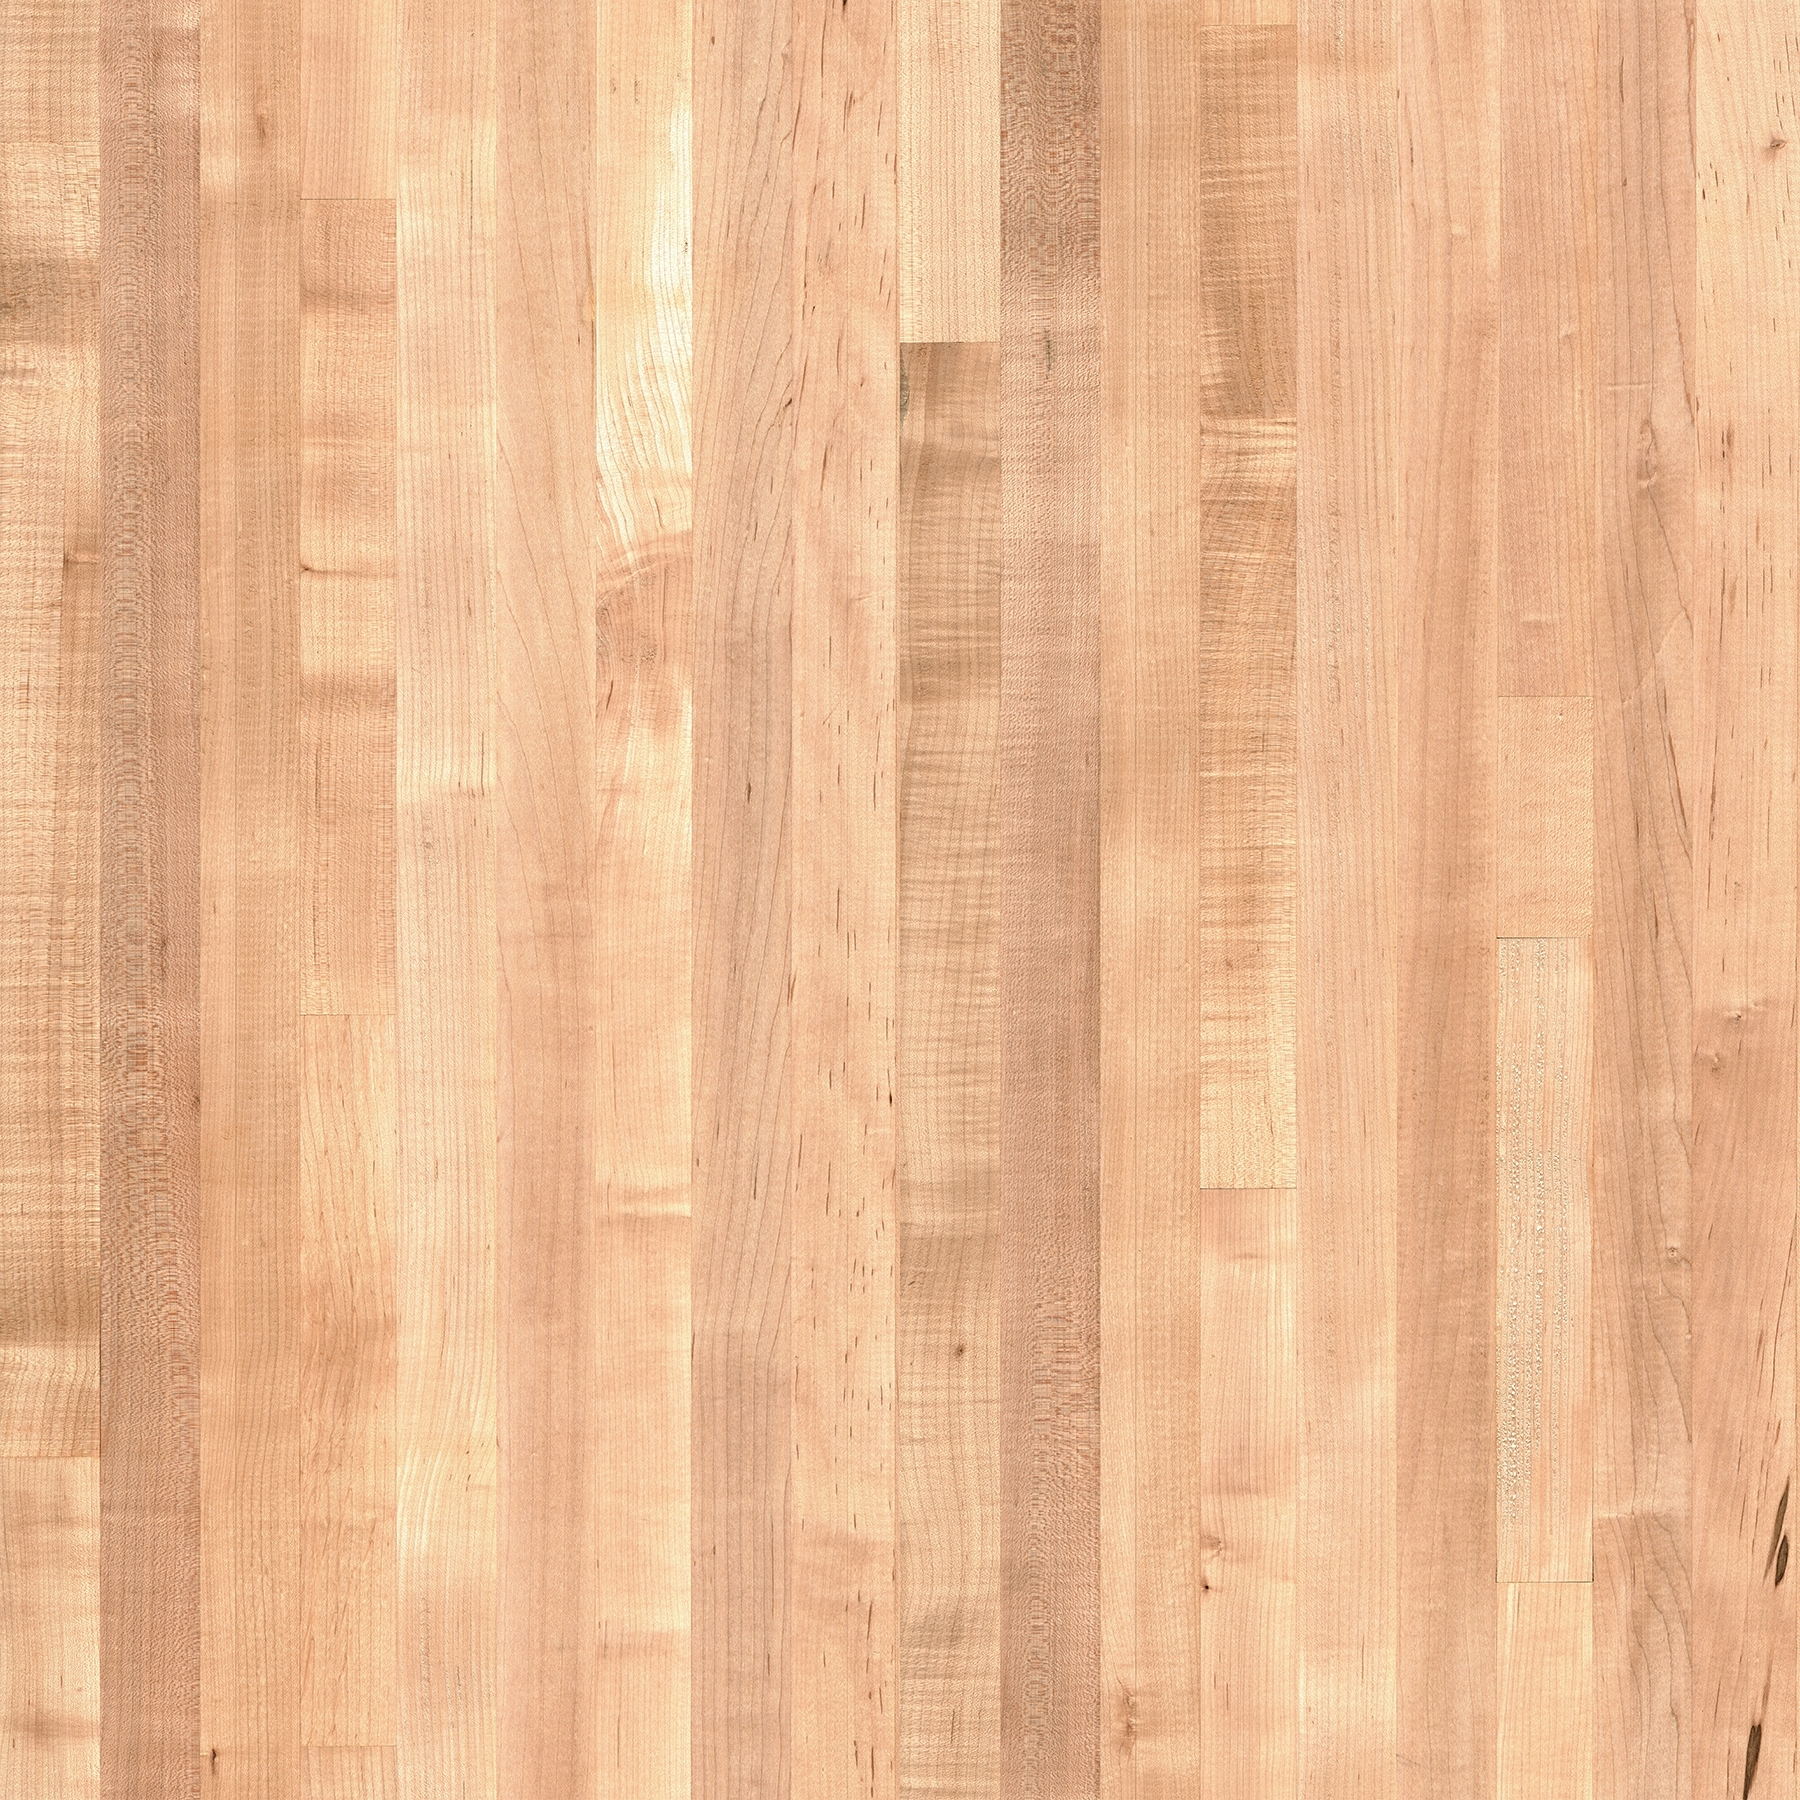 MAPLE // BUTCHER BLOCK / SMOOTH / NATURAL